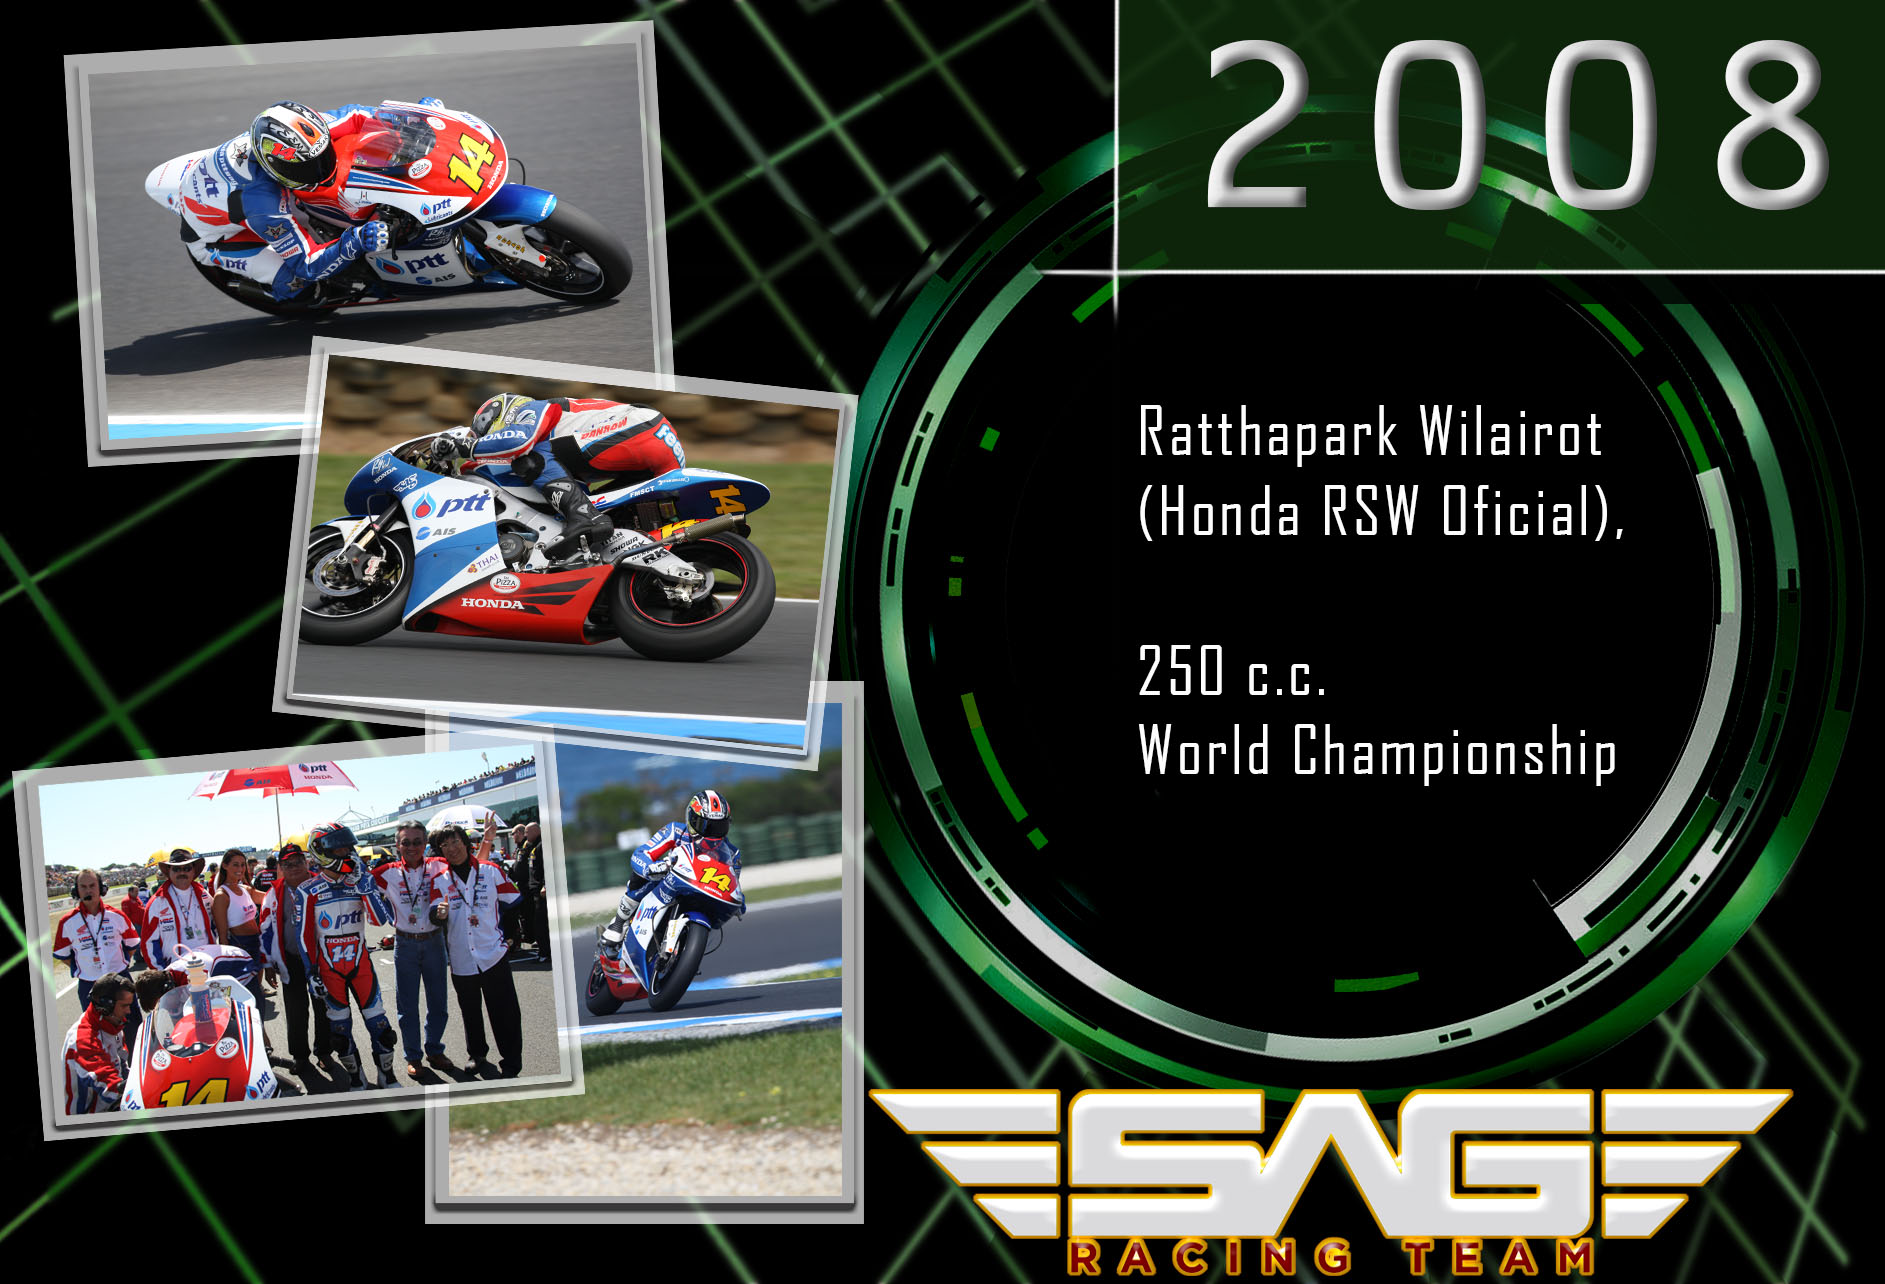 World Championship rider (250cc)